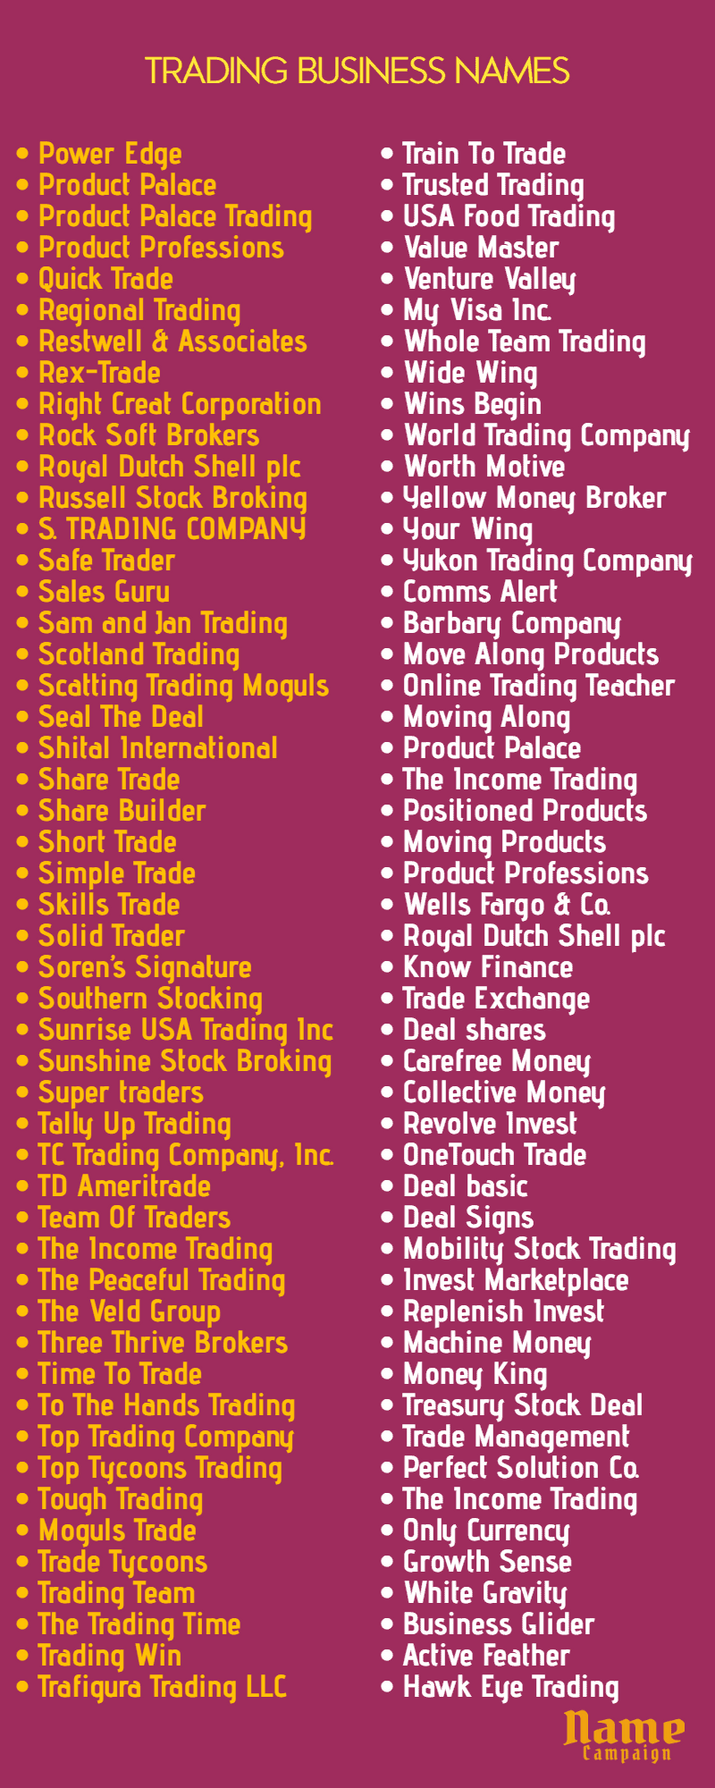 trading company names: best trading companies